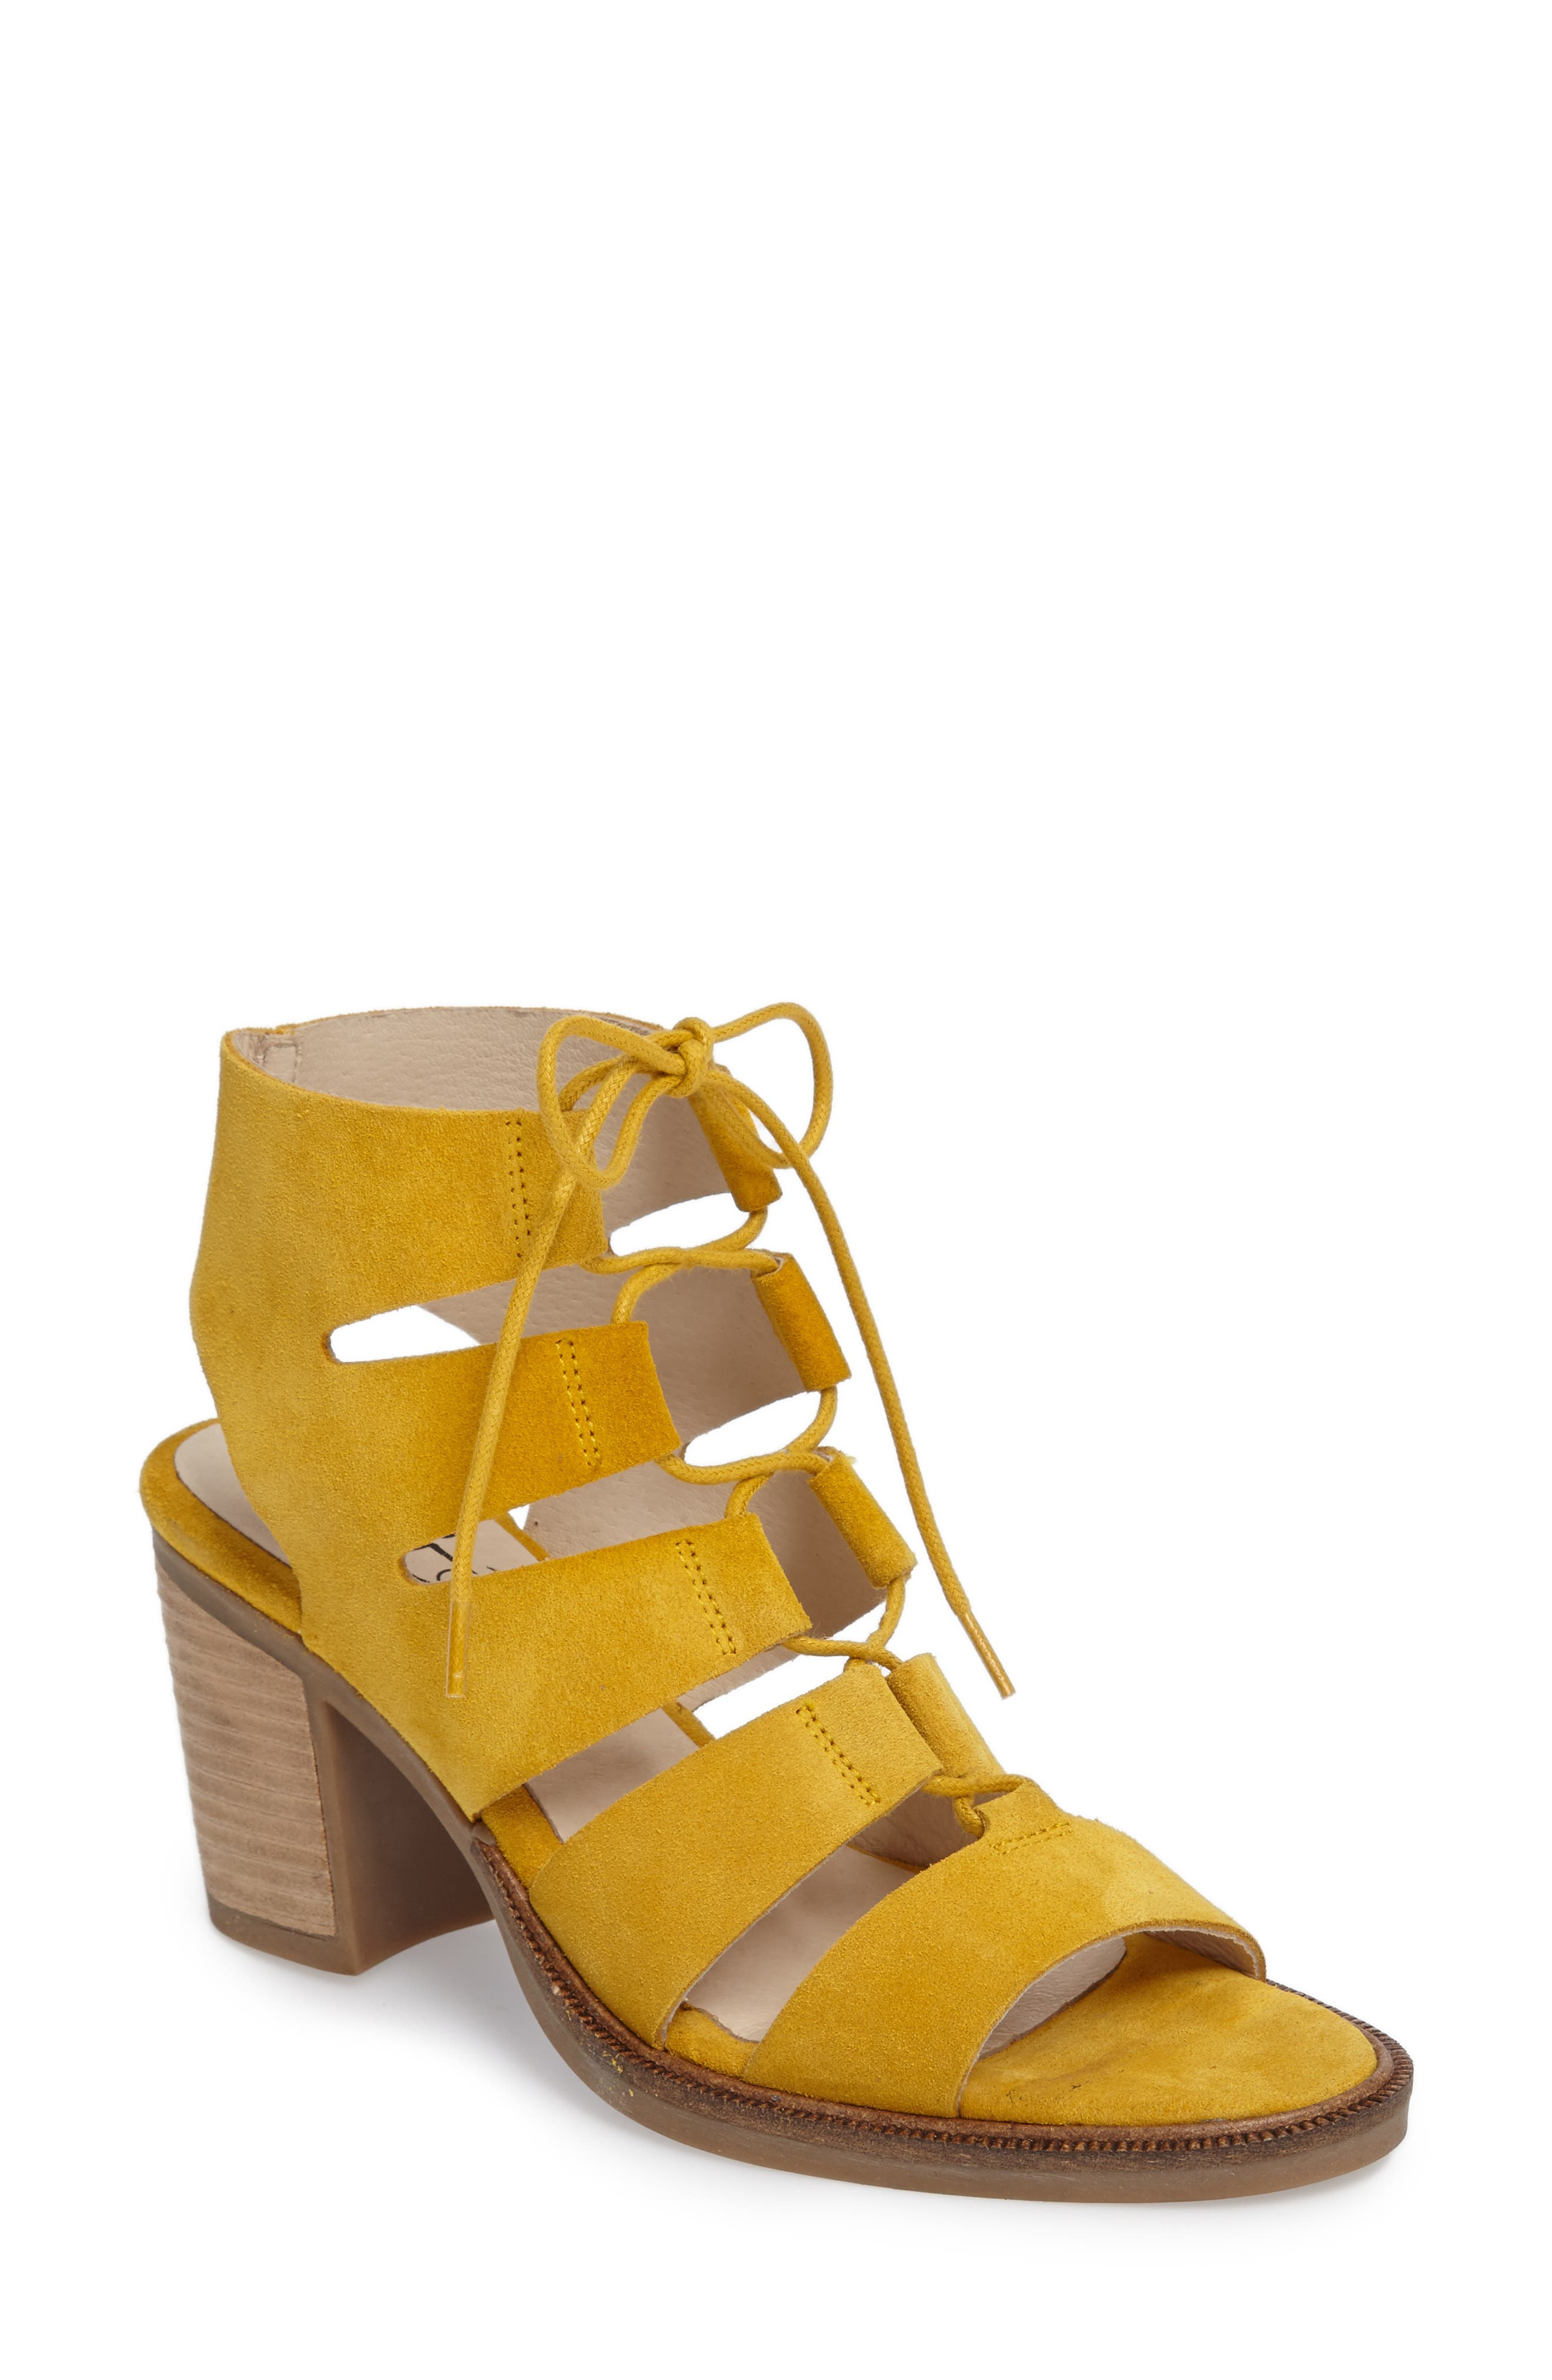 Bos. & Co. Brooke Ghillie Cage Sandal (Women)